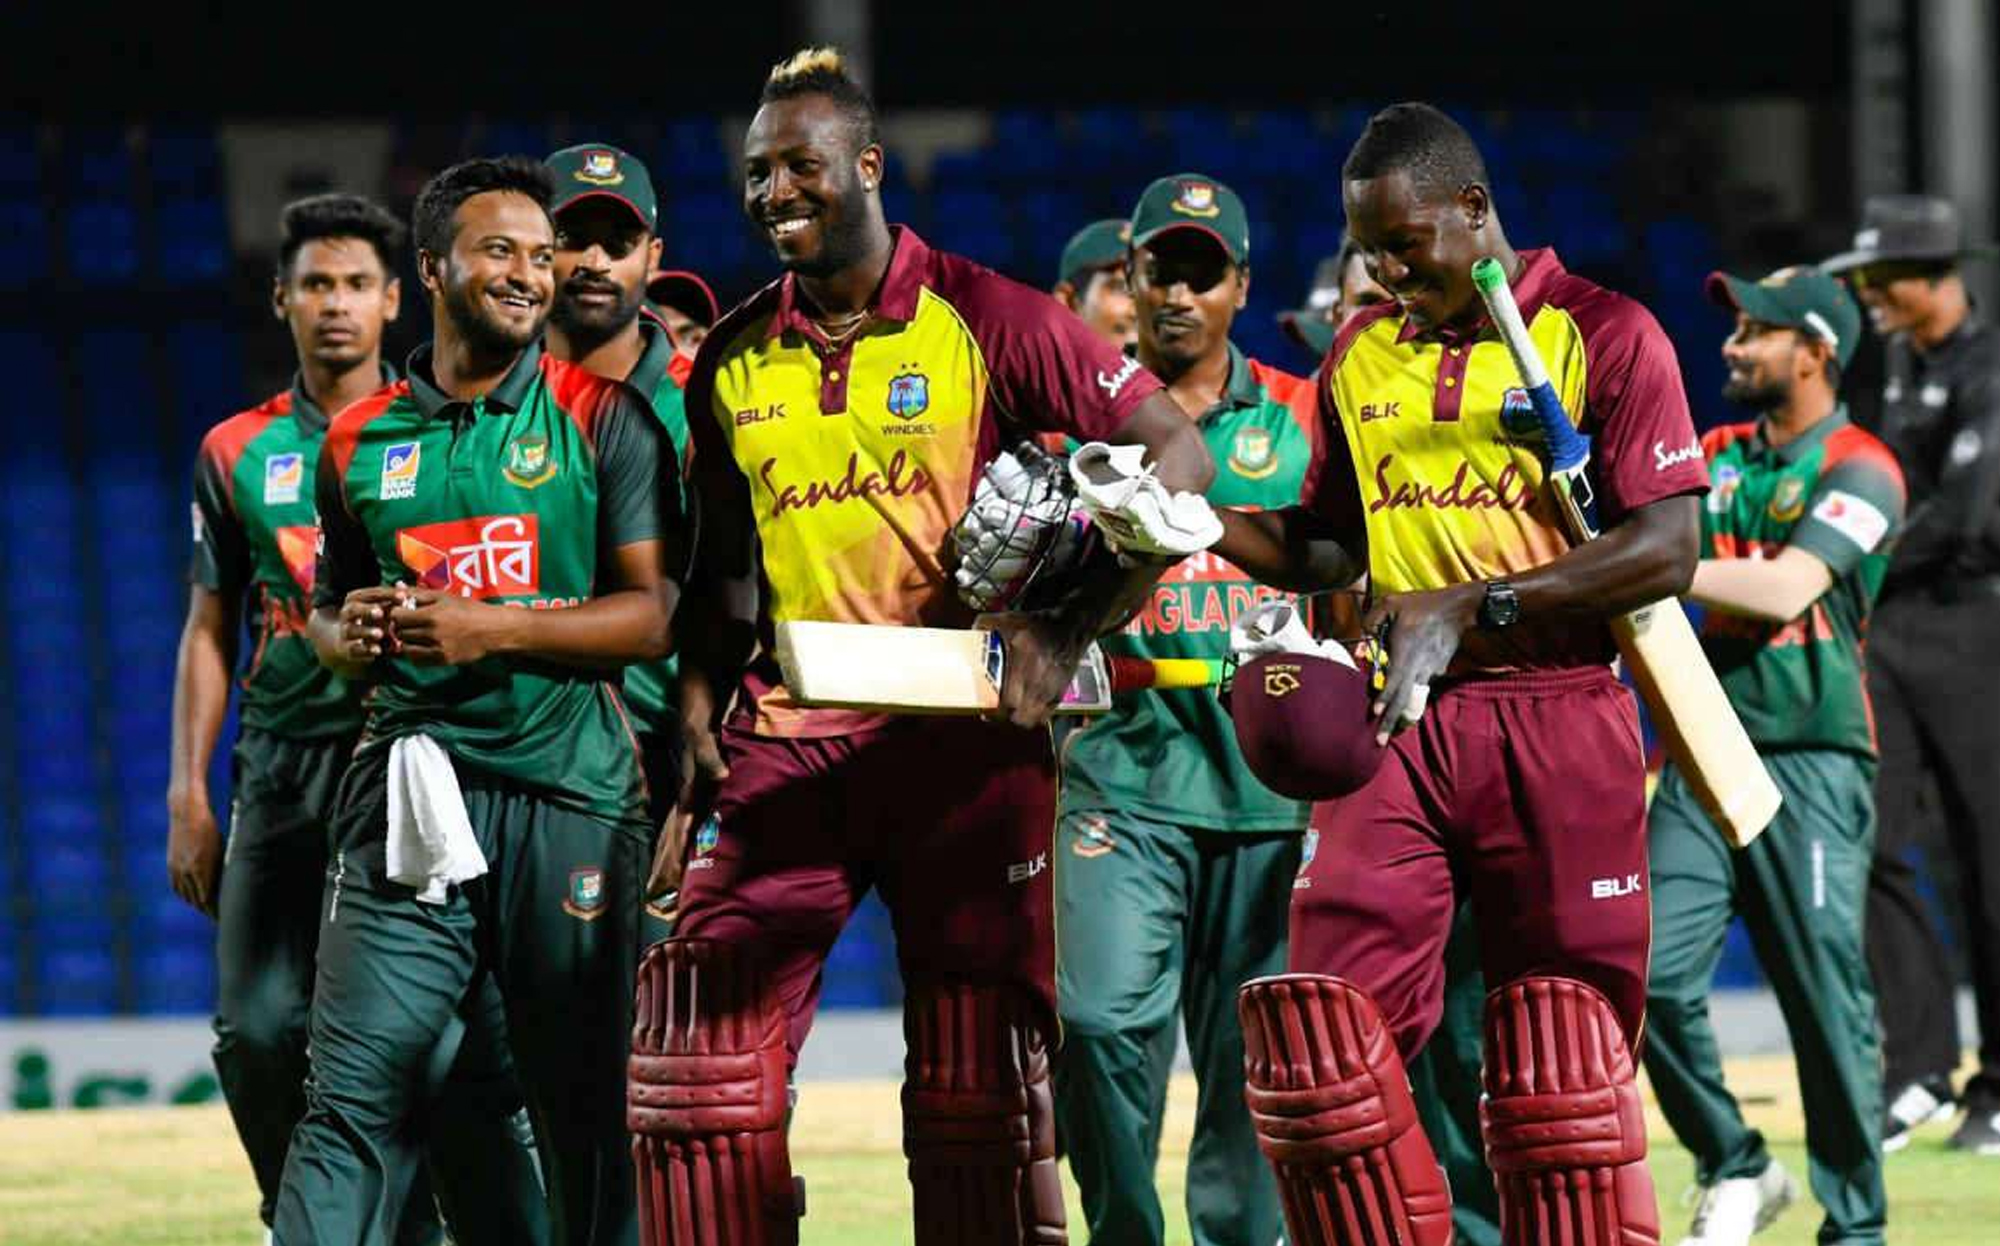 Two venues in BCB's thinking for the Windies series